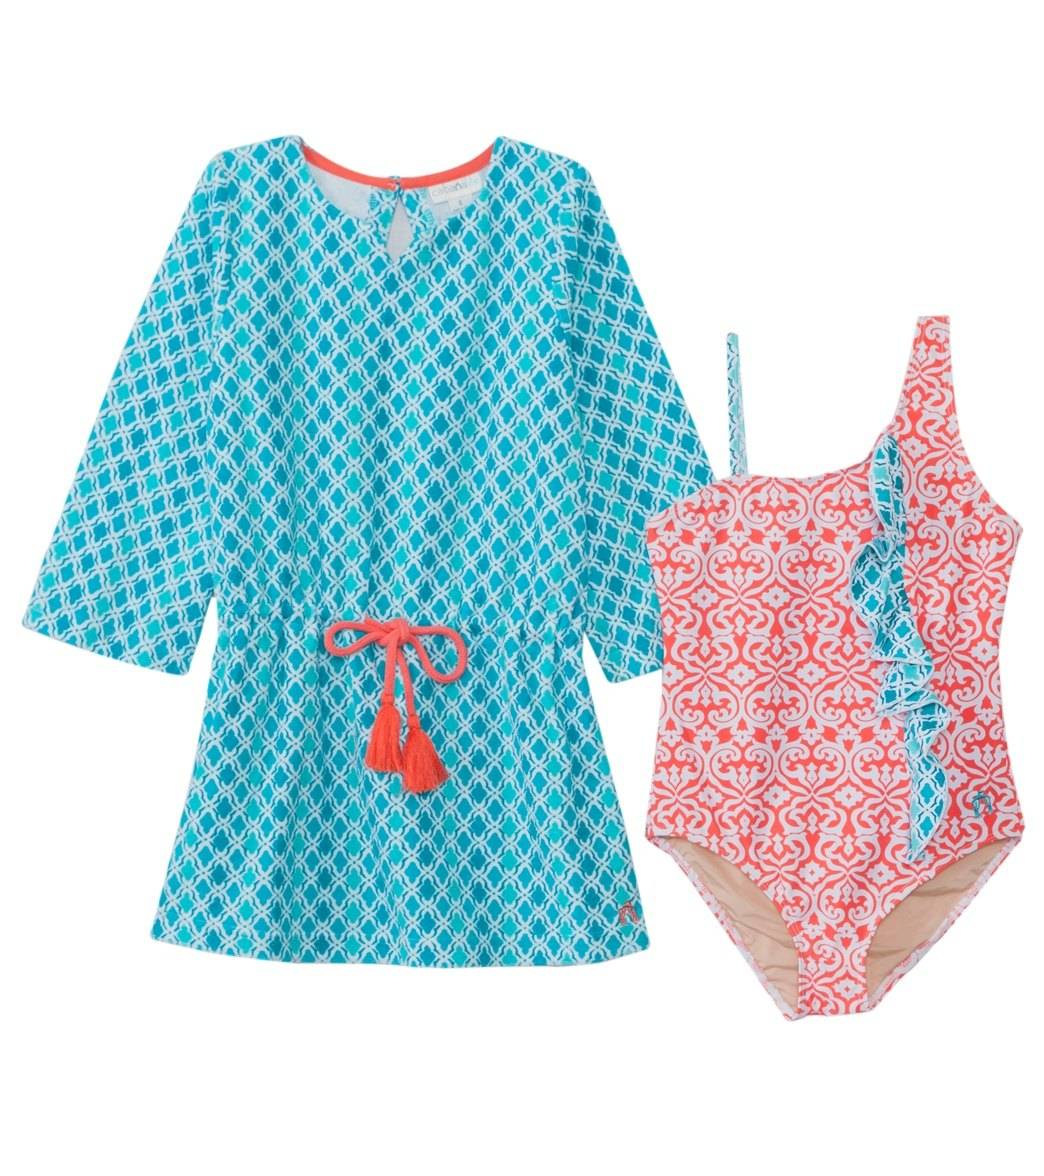 5b3975df1f ... Cabana Life Girls  UPF 50+ Coral Seas One Piece Swimsuit   Terry Cover  Up. Share